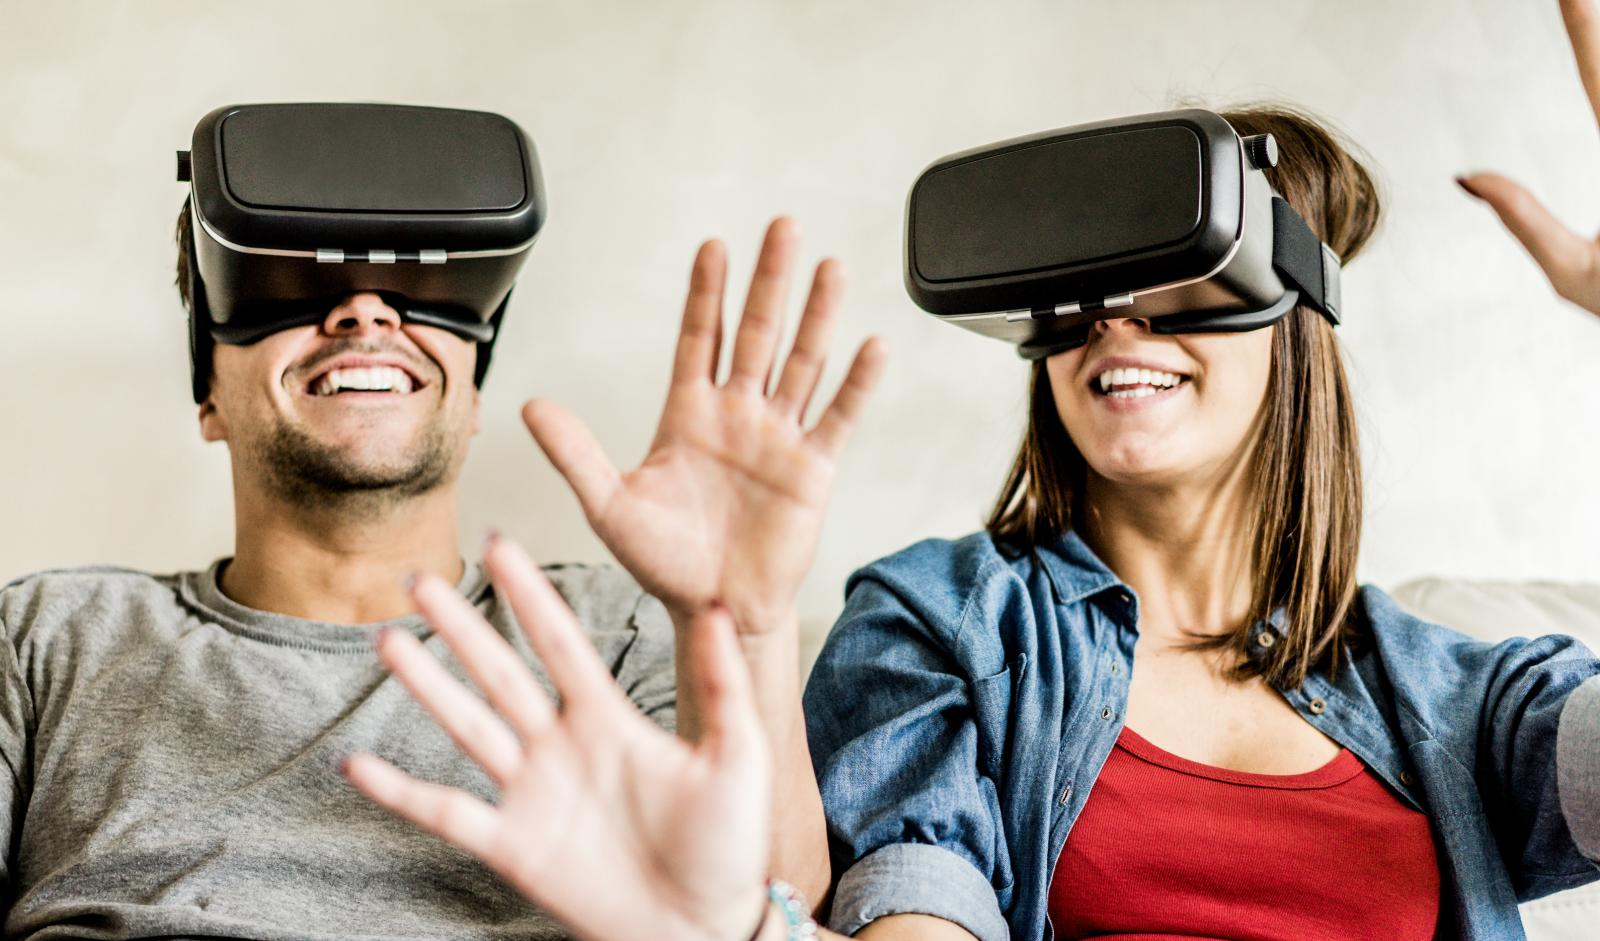 Young couple in need of self-storage tips for their virtual reality goggles